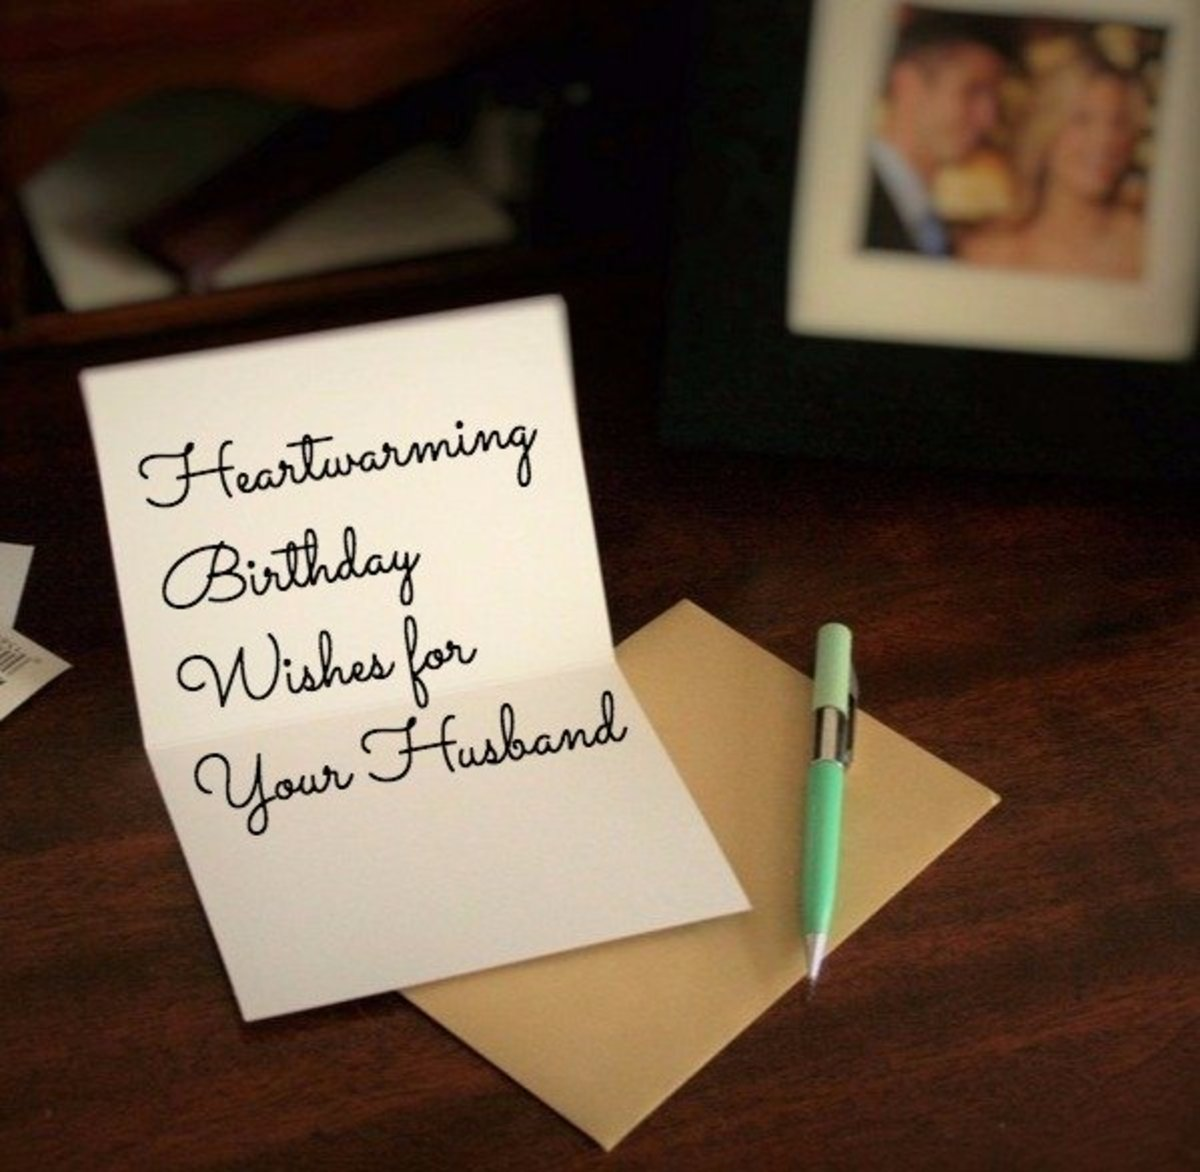 Heartwarming Birthday Wishes for Your Husband